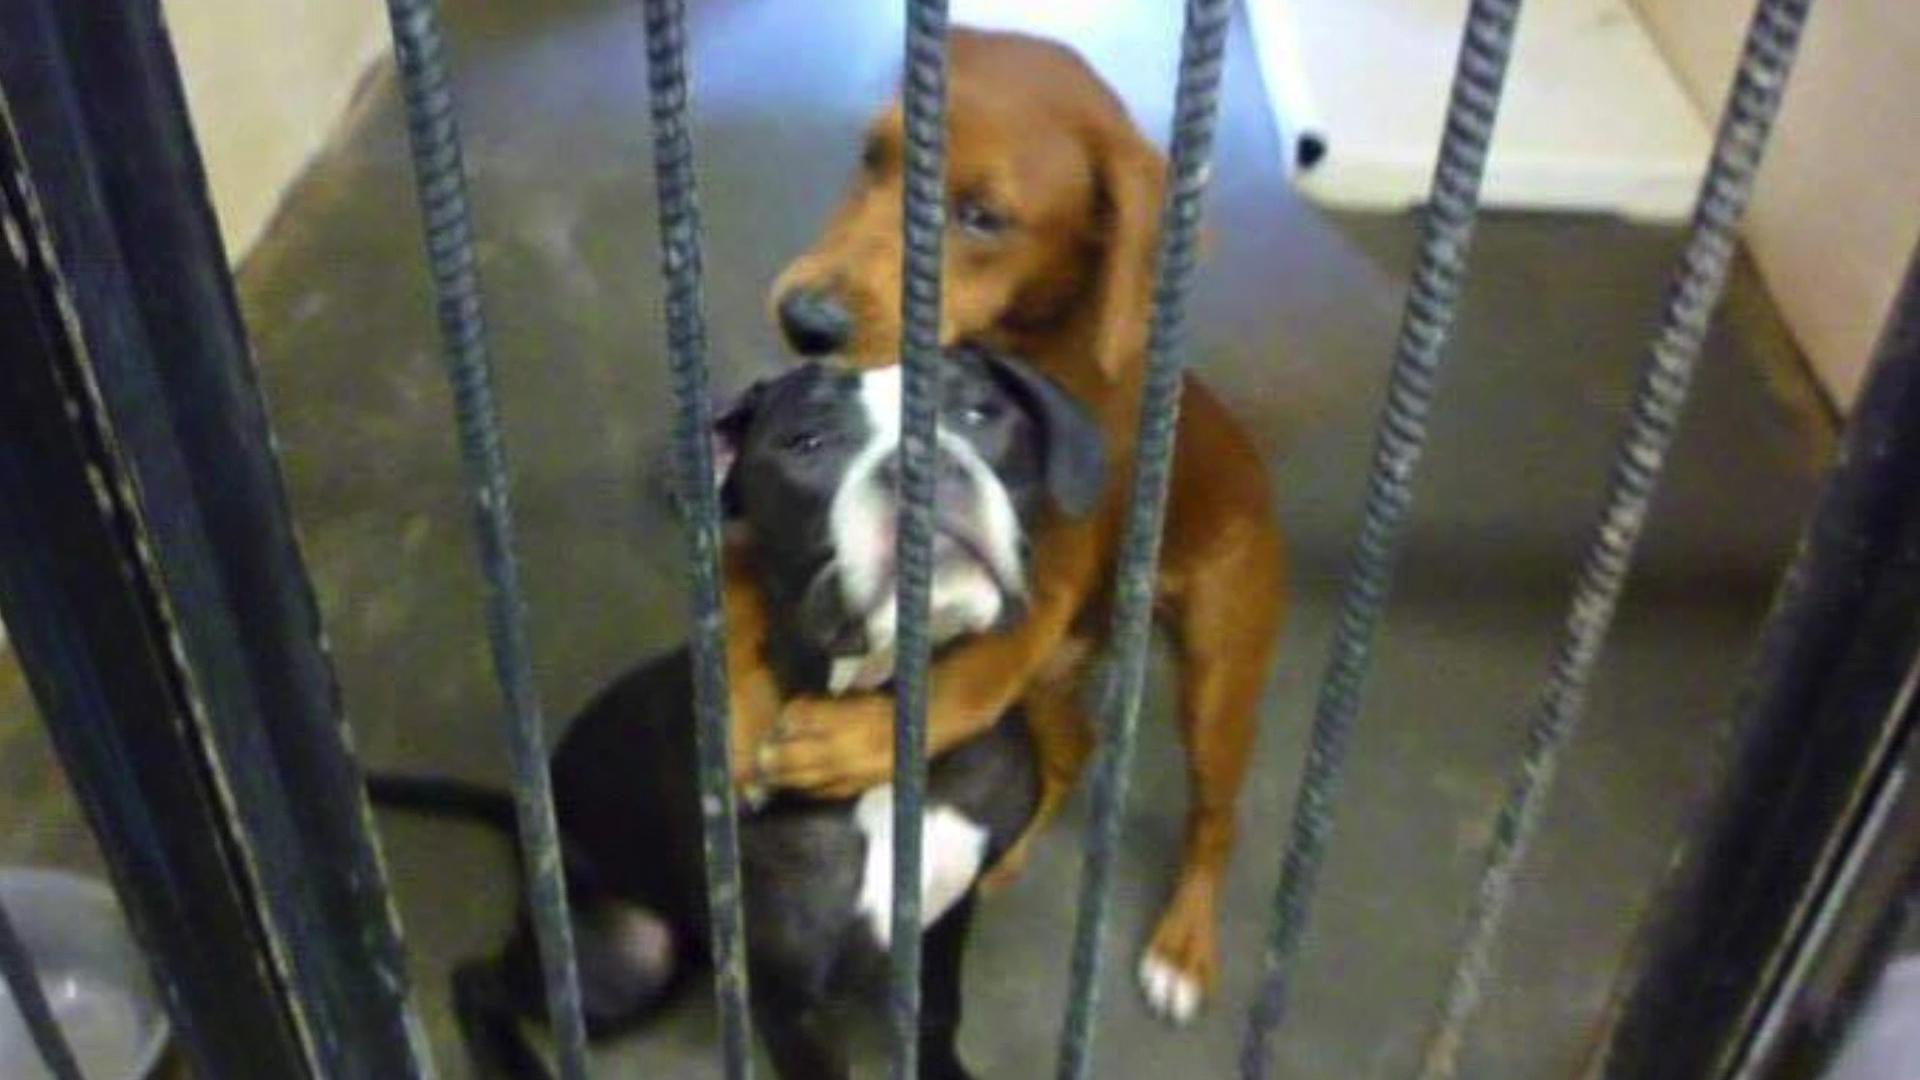 'Hugging Dog' viral photo saves pair from being put down